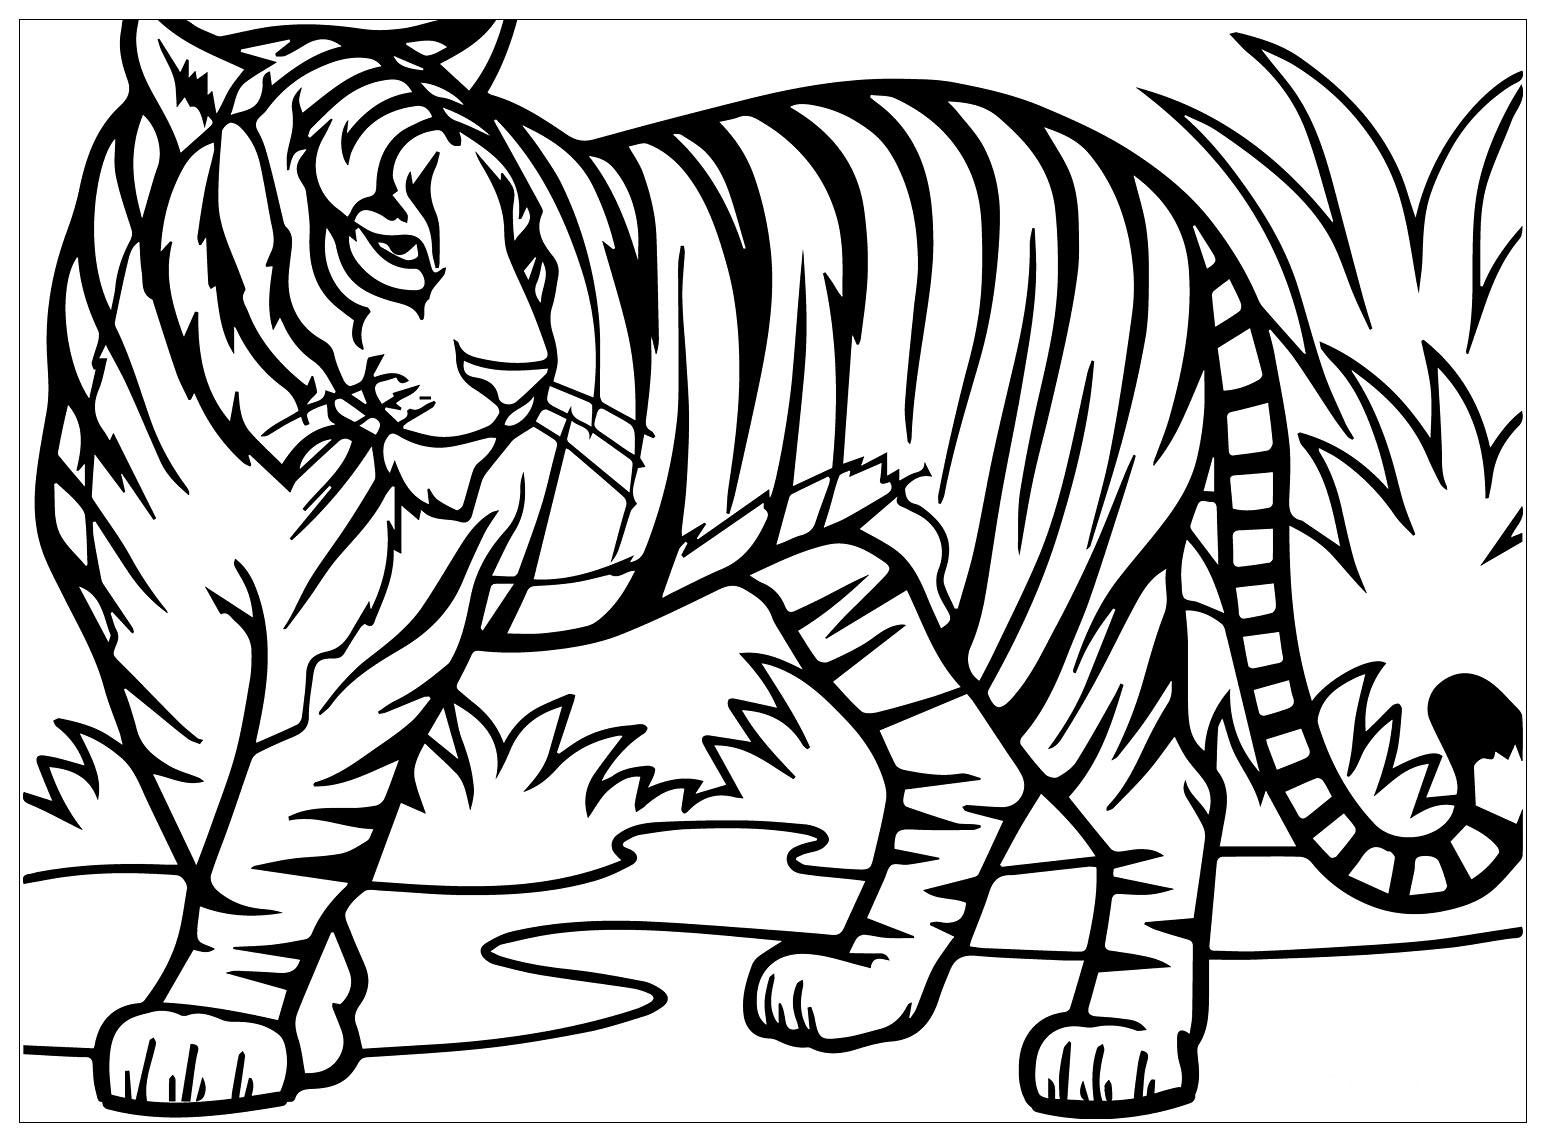 coloring page tiger free tiger coloring pages for adults printable to coloring tiger page